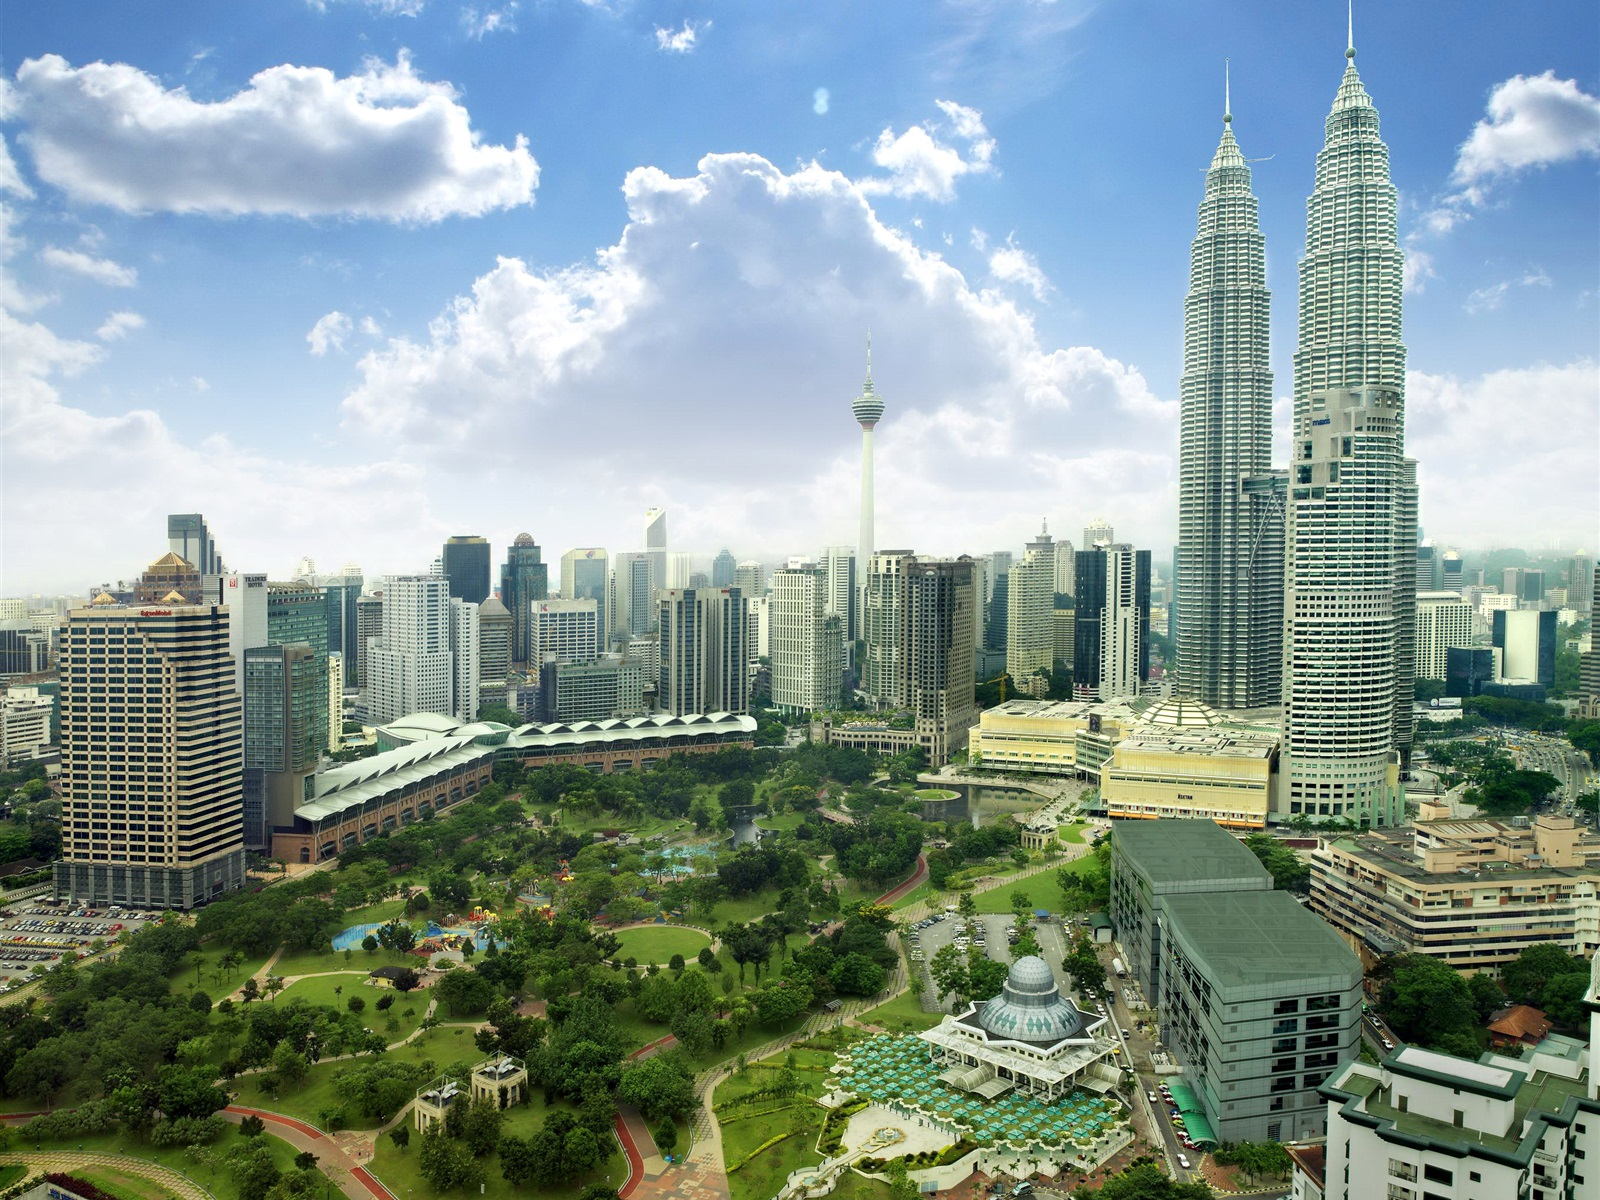 introducing malaysia Introduction to malaysia 10 days from £1250 per person get a taste of malaysia's diverse geography and culture on this 10-day trip that starts in kuala lumpur and ends in langkawi.